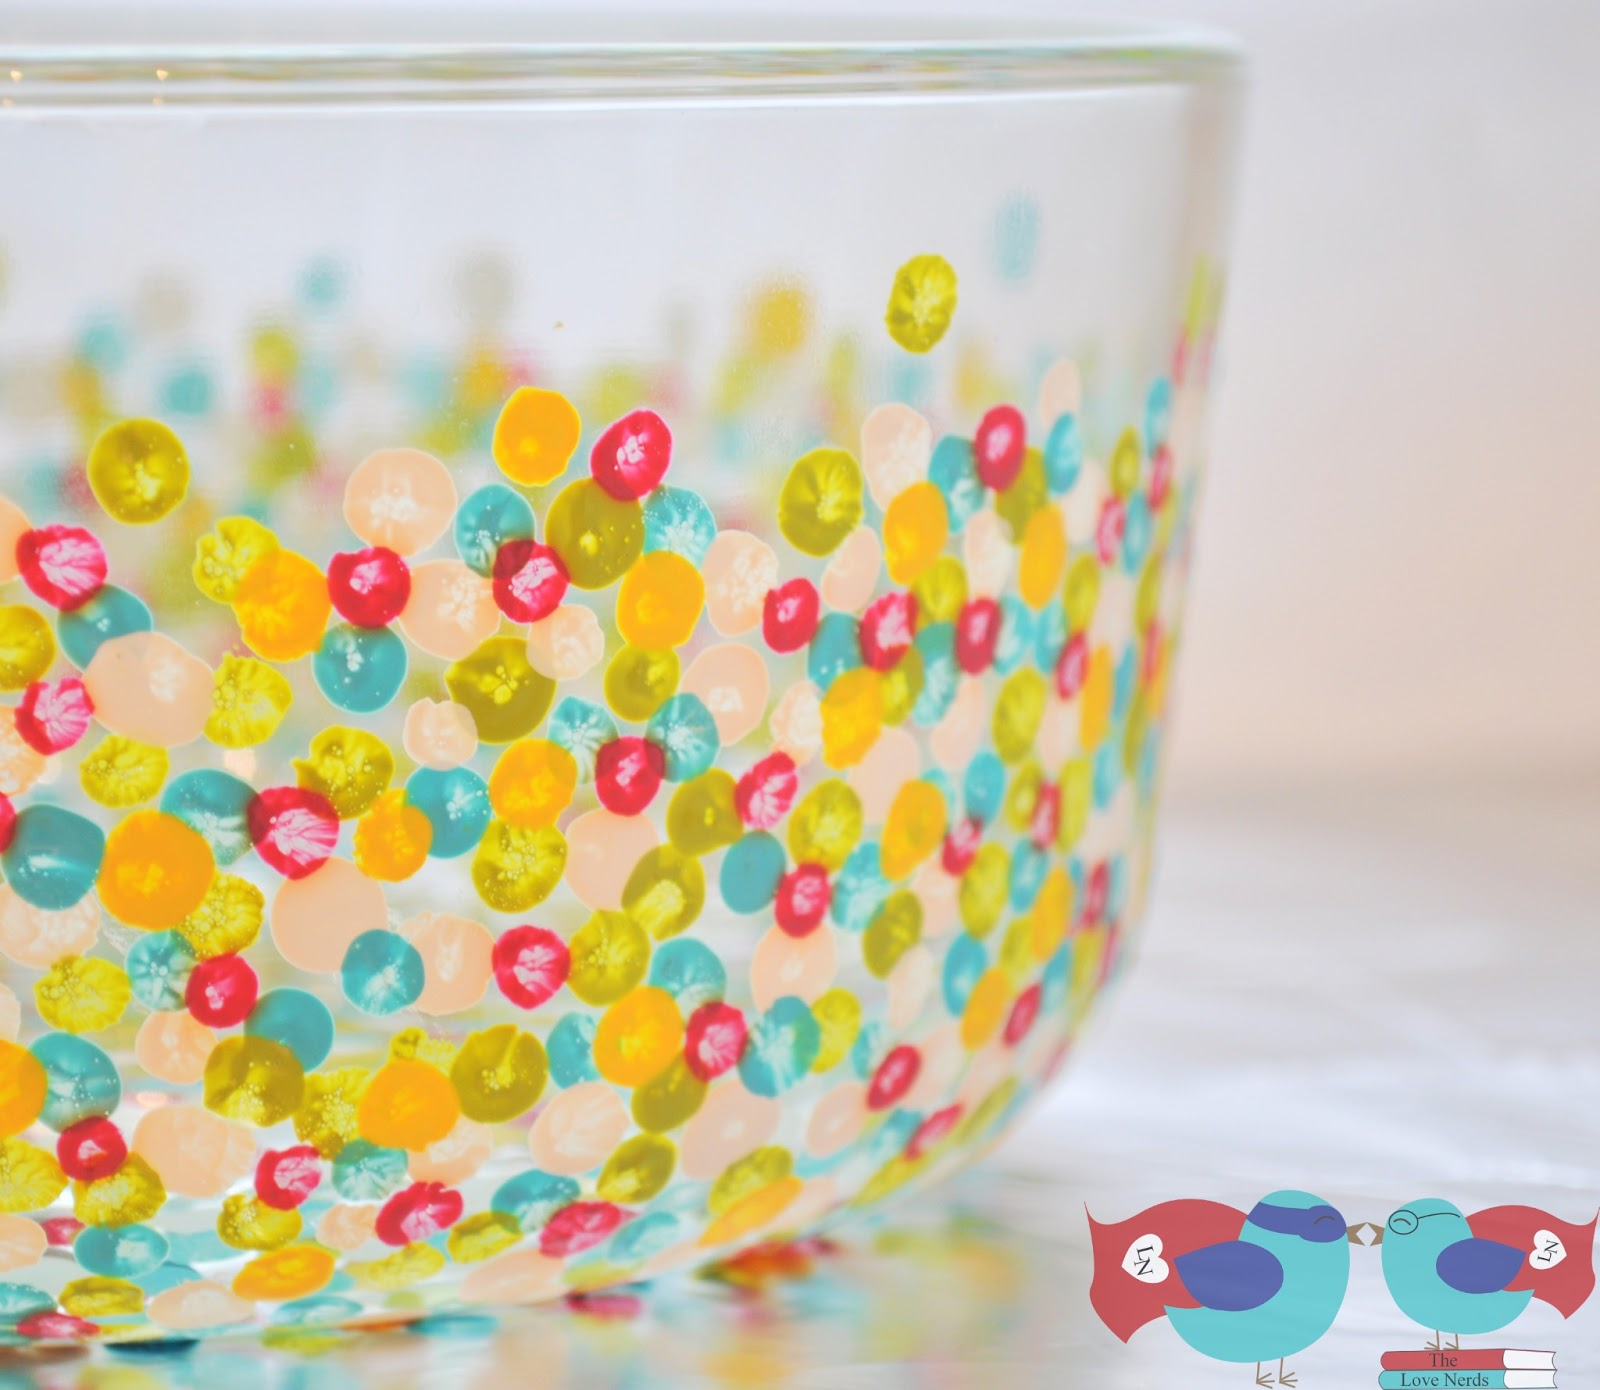 How To Decorate A Bowl How to Hand Paint Glass Bowls with Confetti Dots The Love Nerds 2